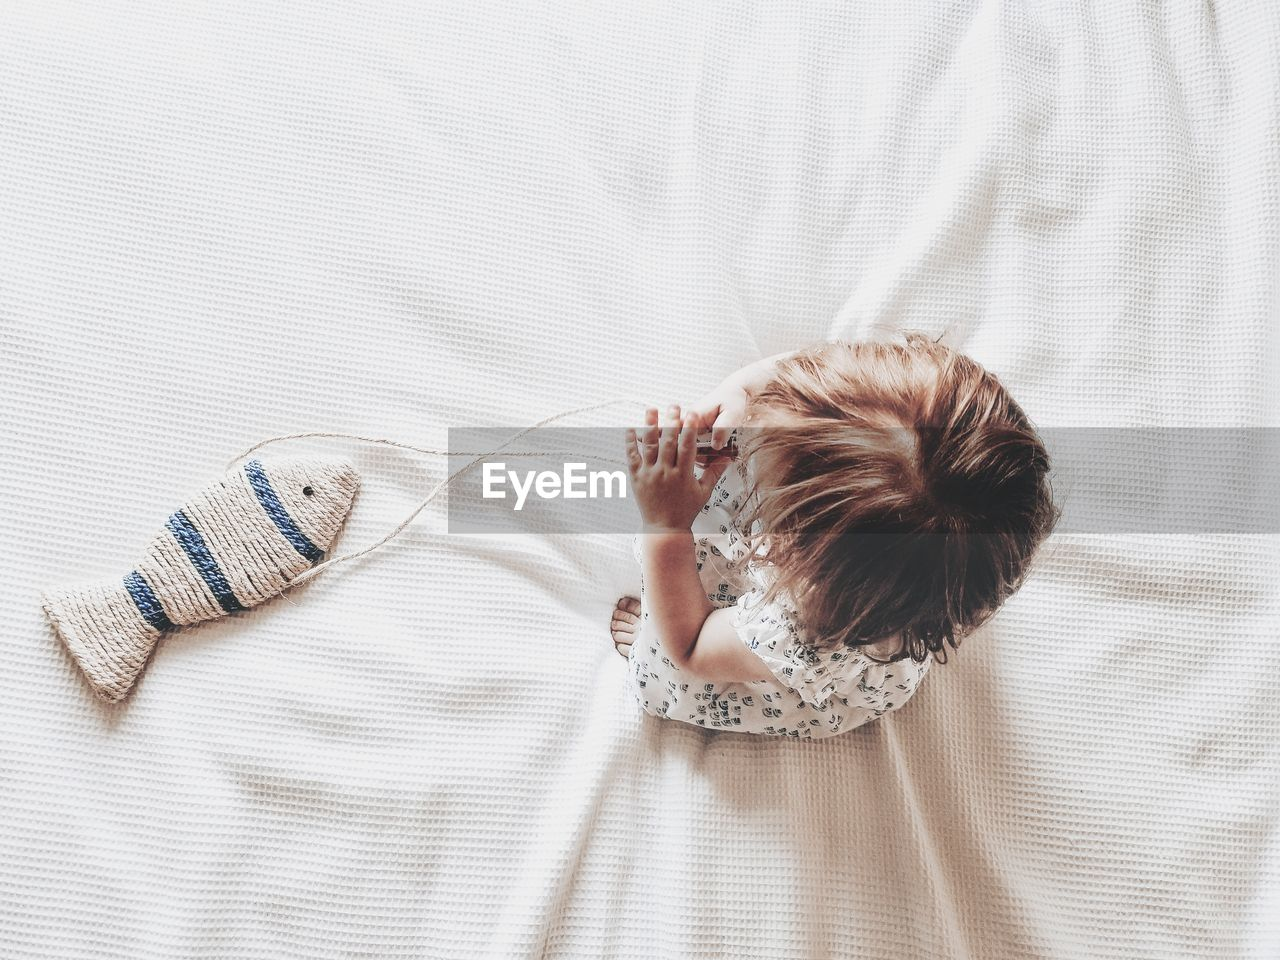 High angle view of baby toddler girl on bed with fish playing